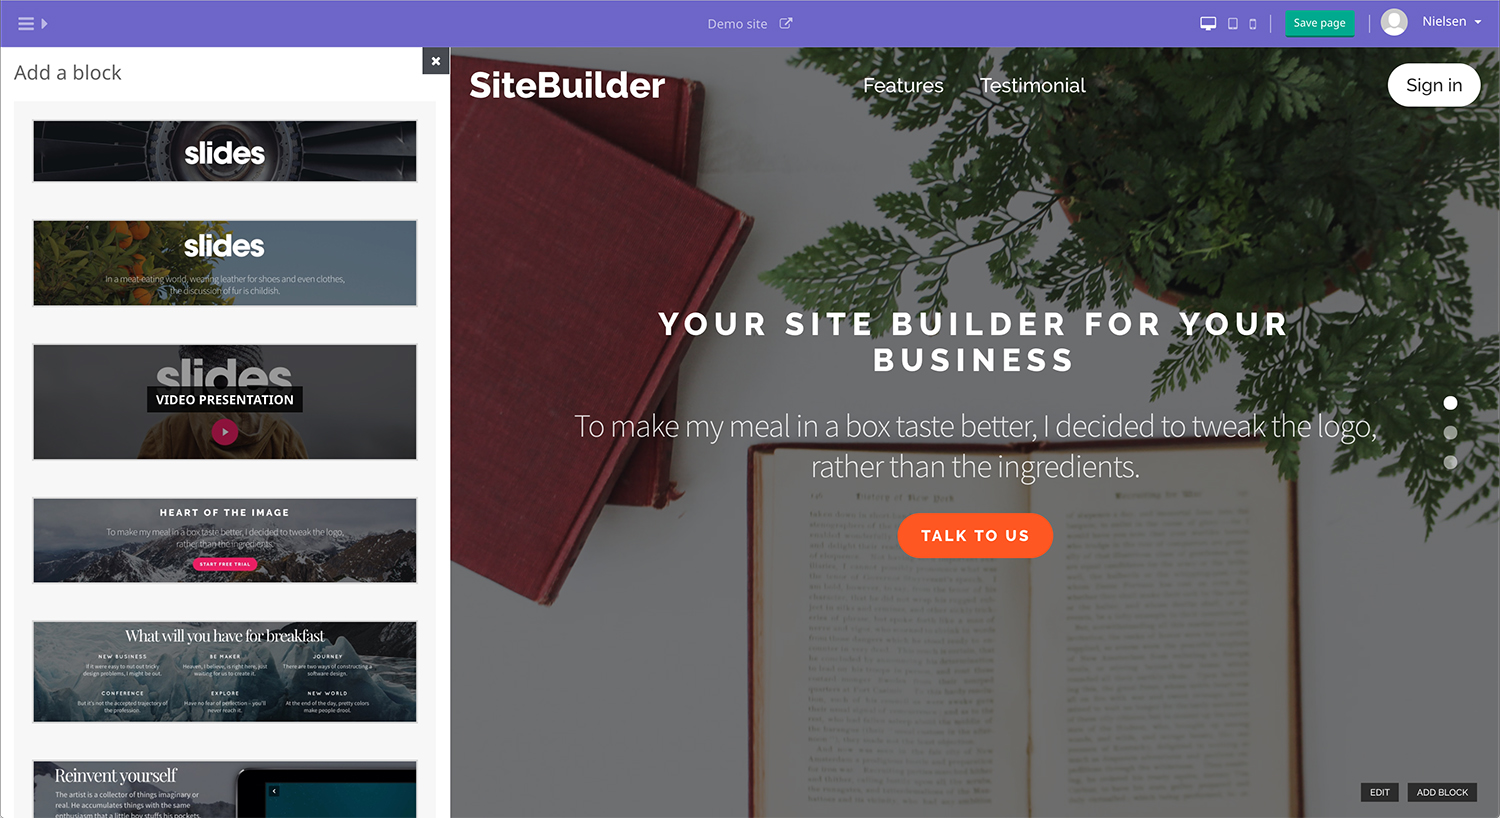 Screenshot of the SiteBuilder